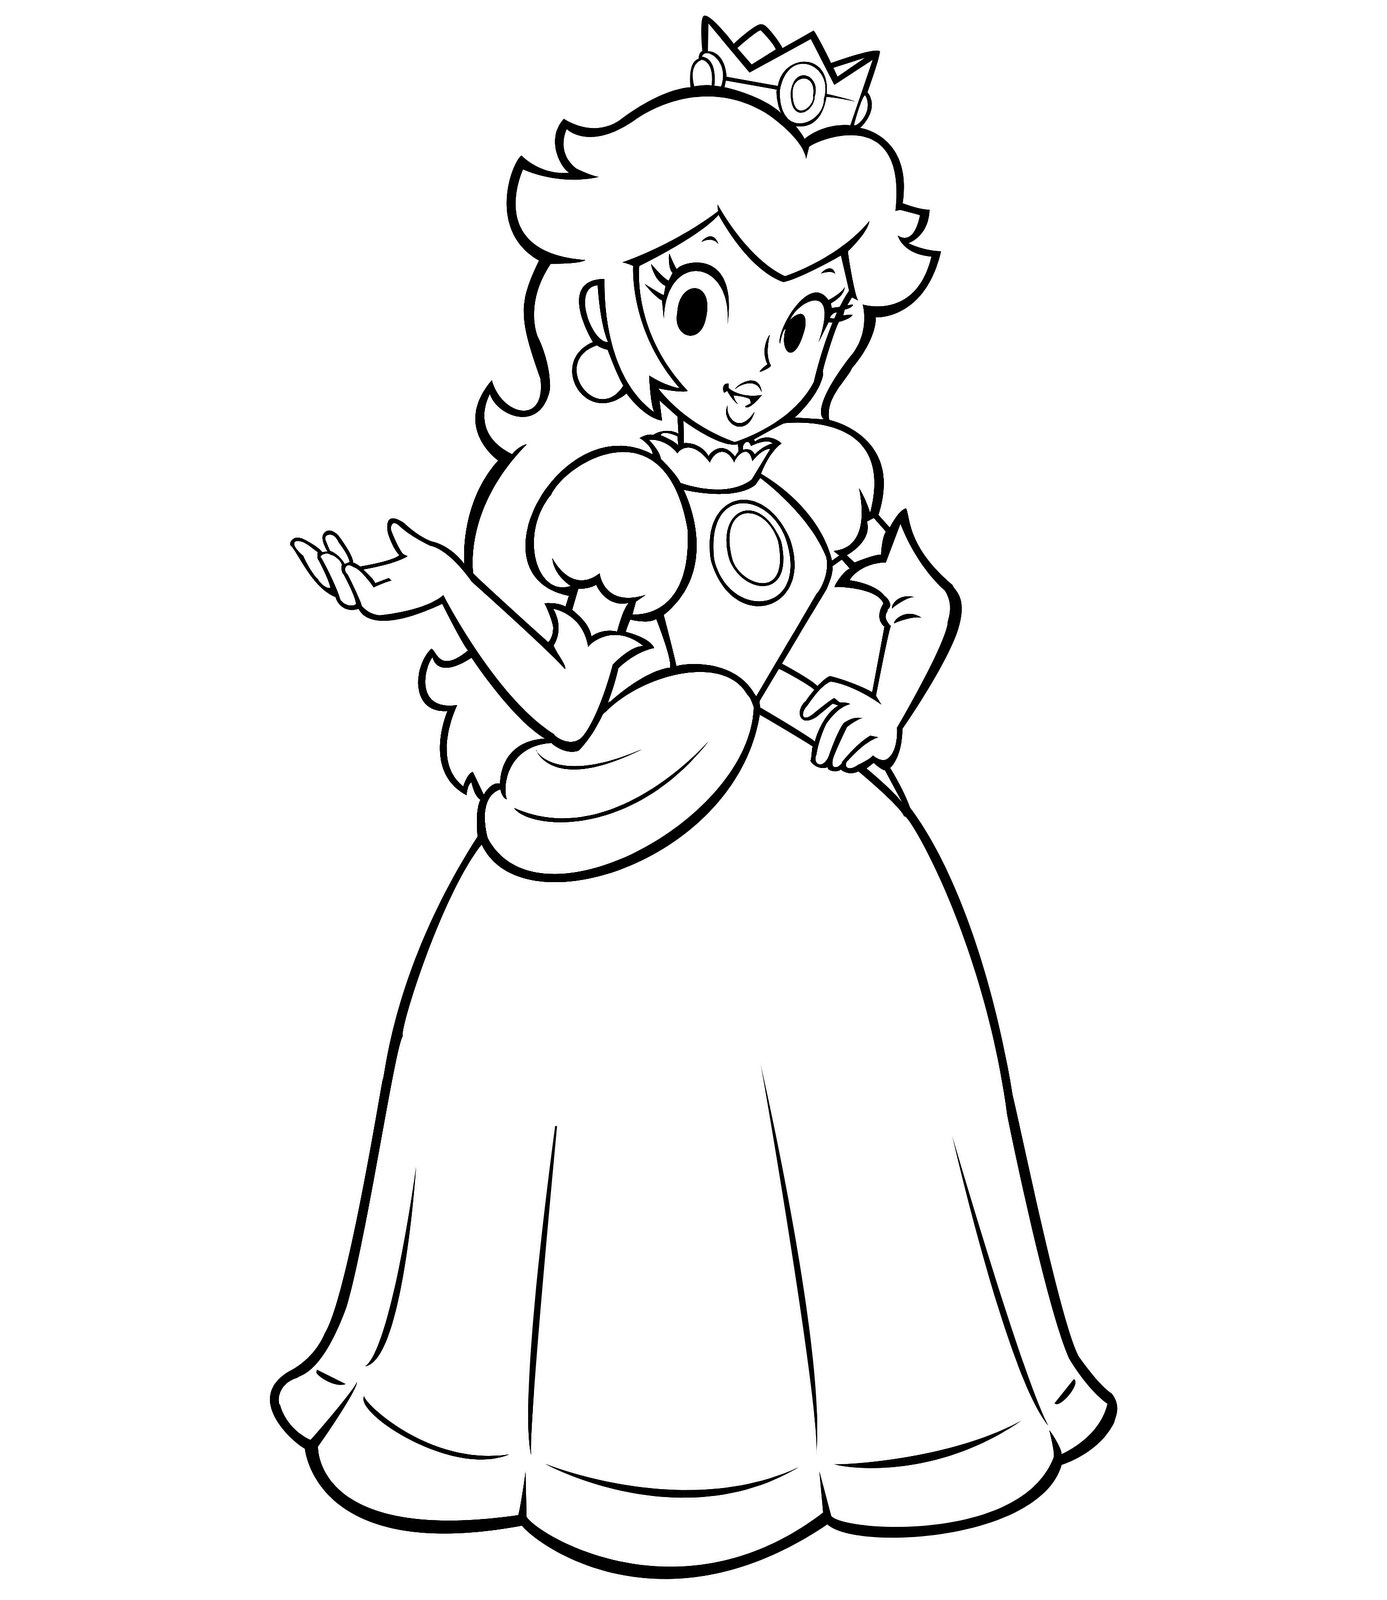 Princess Coloring Pages Spot : Free princess peach coloring pages for kids